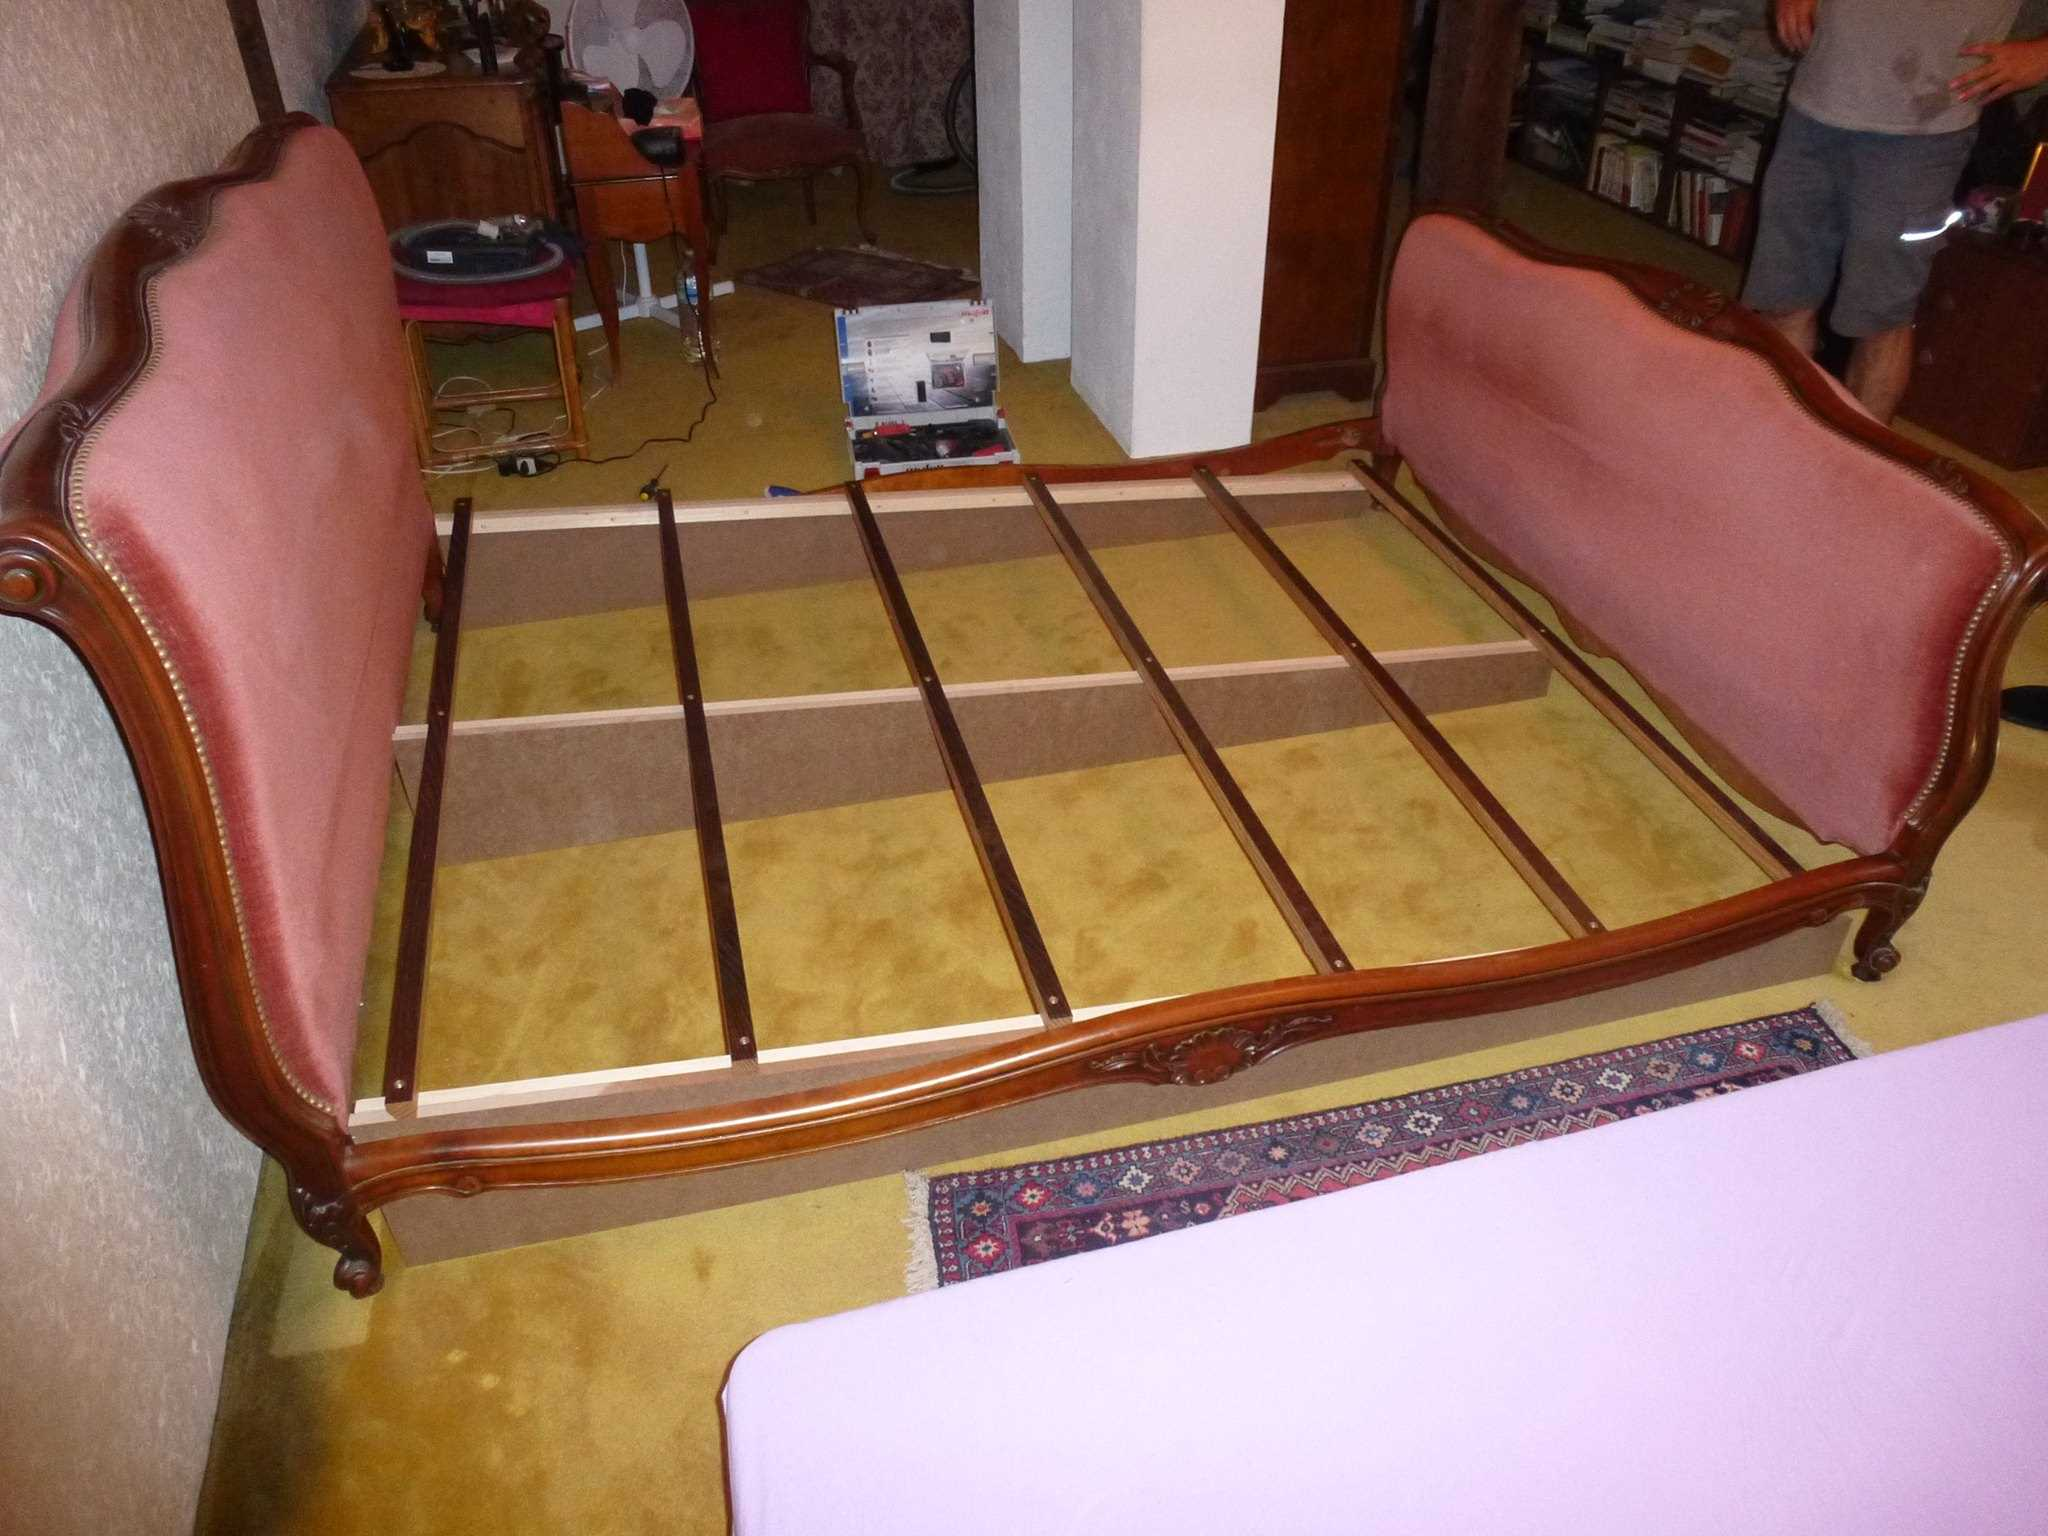 simple_modified_bed_method_inclined_bed_therapy_ibt_2.jpg - 210.57 kB